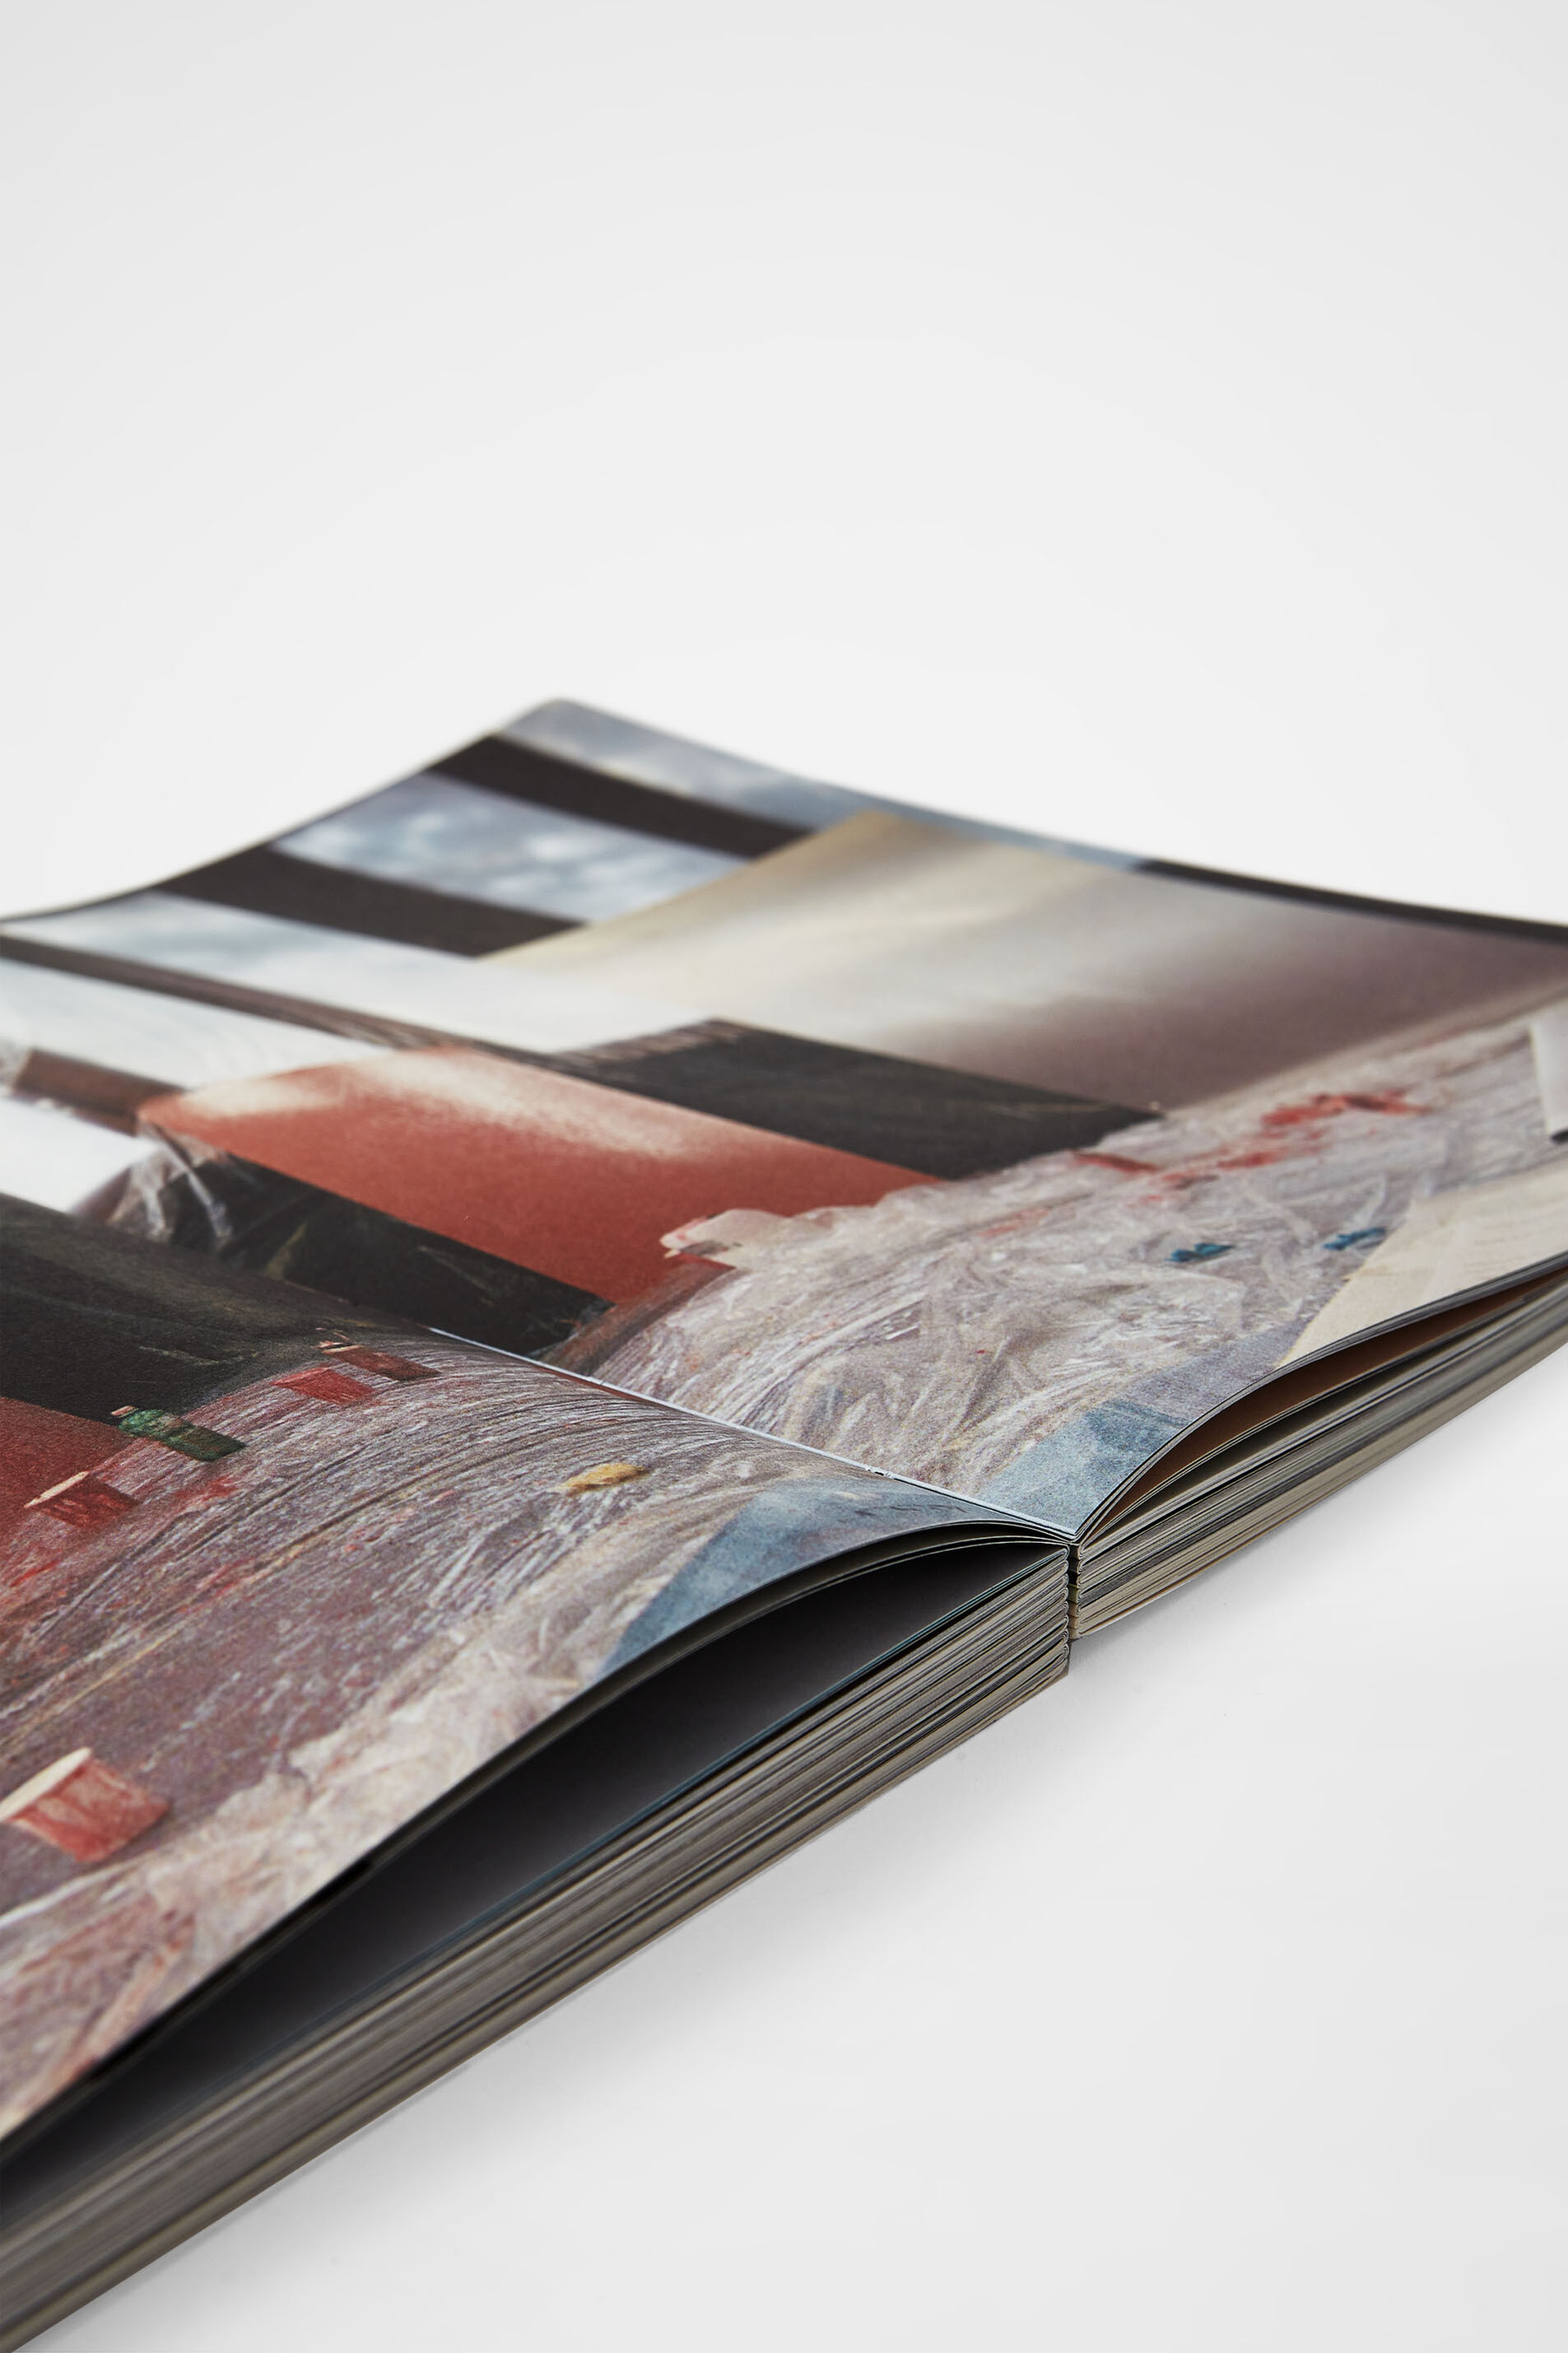 A MAGAZINE curated by Lucie and Luke Meier, multicolour, large